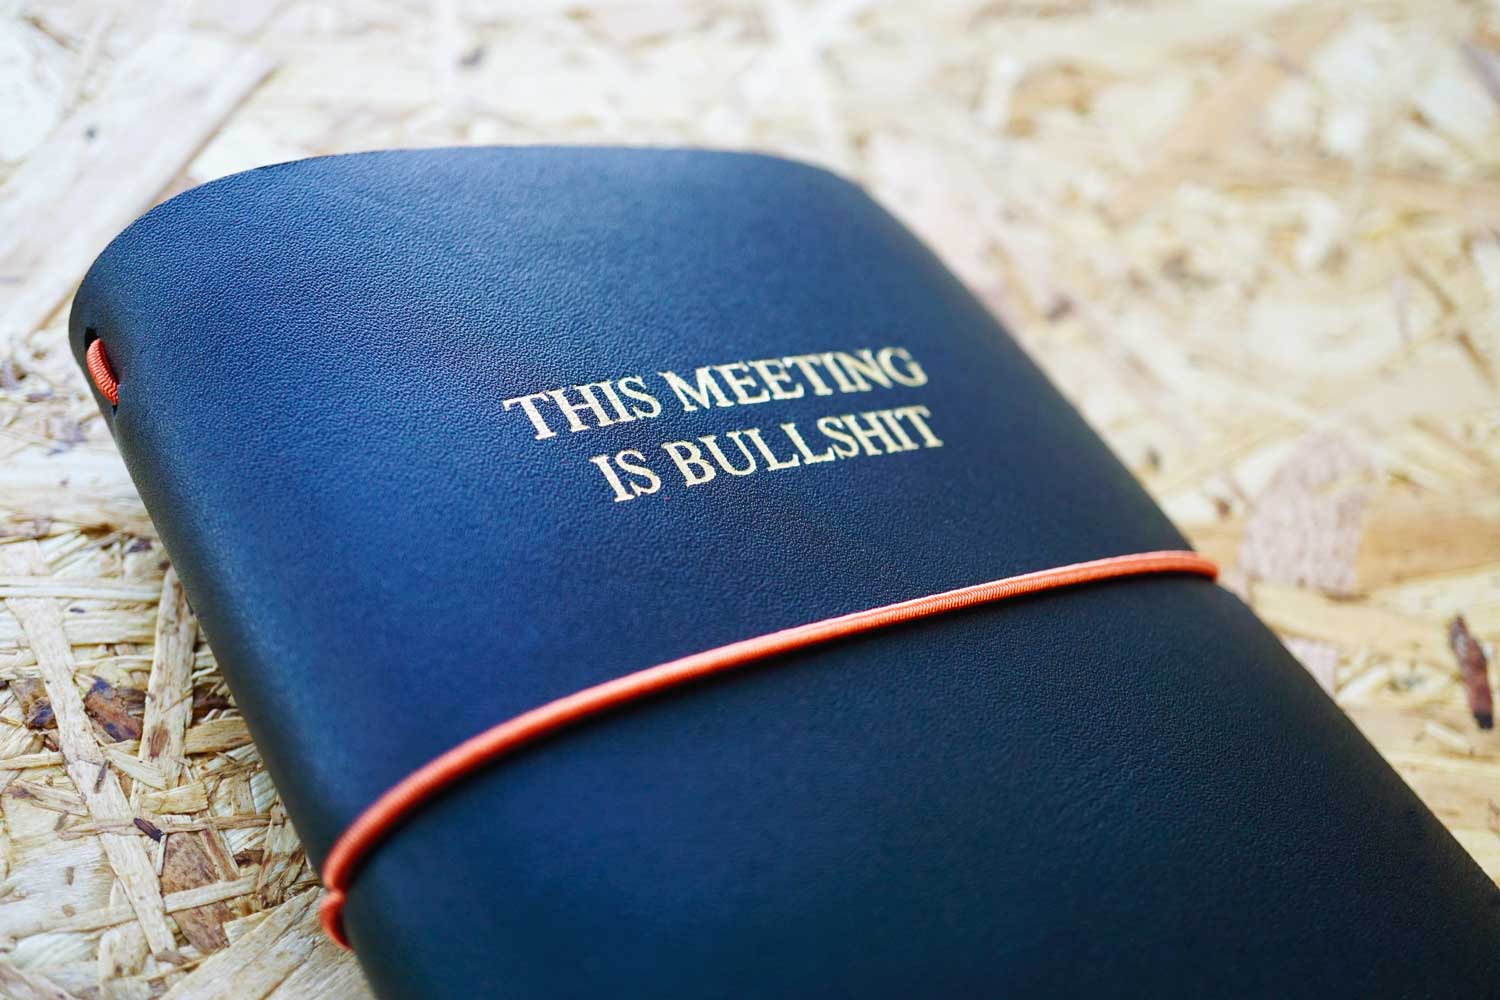 Never-ending journal - This meeting is Bullsh*t, leather travel journal, A6 pocket size with embossed title in gold foil